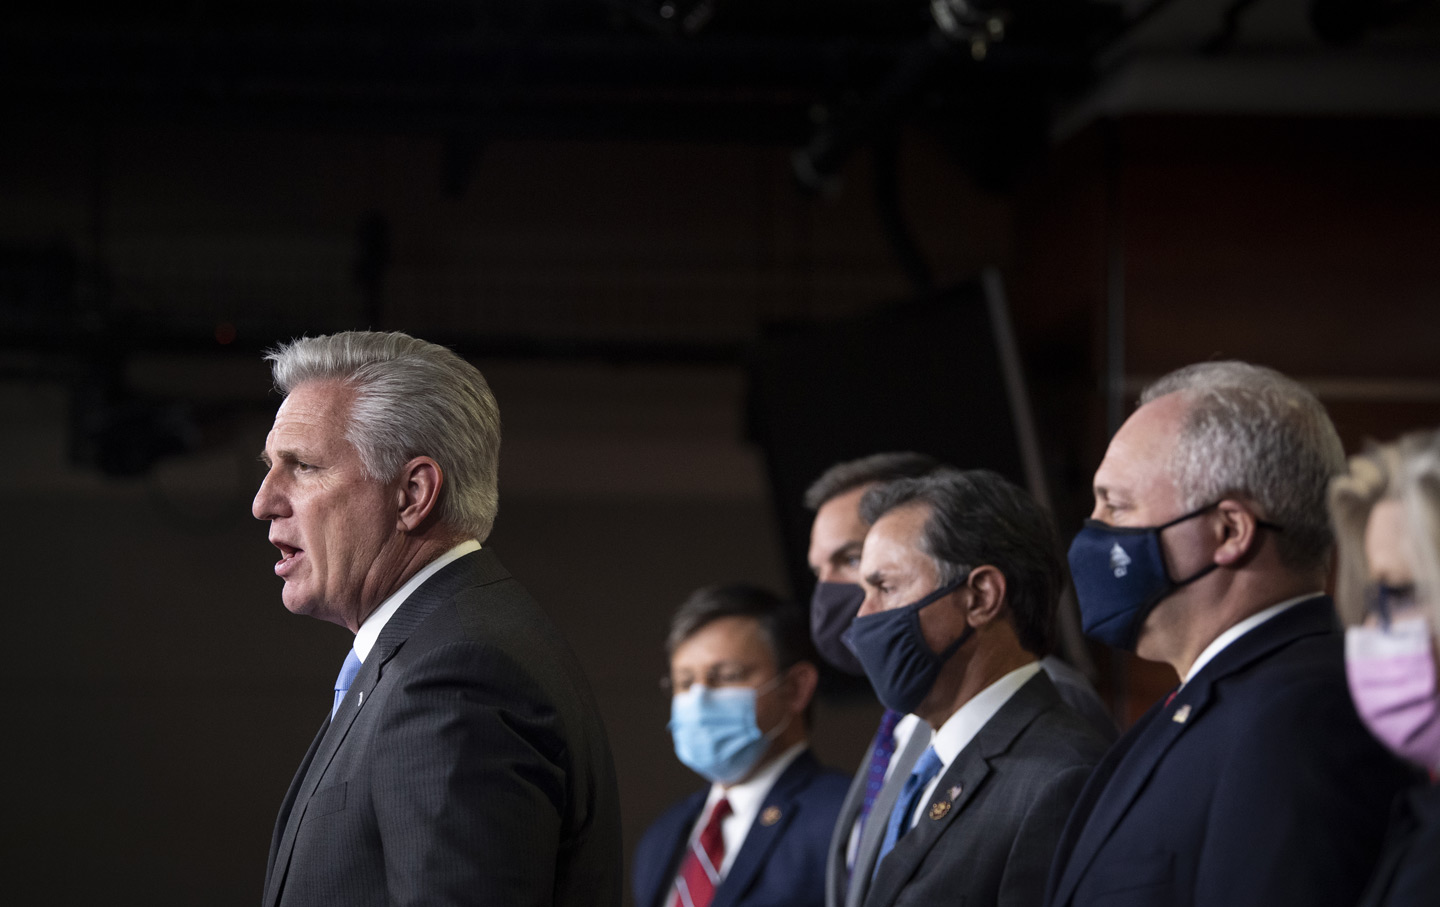 kevin-mccarthy-house-republicans-gty-img